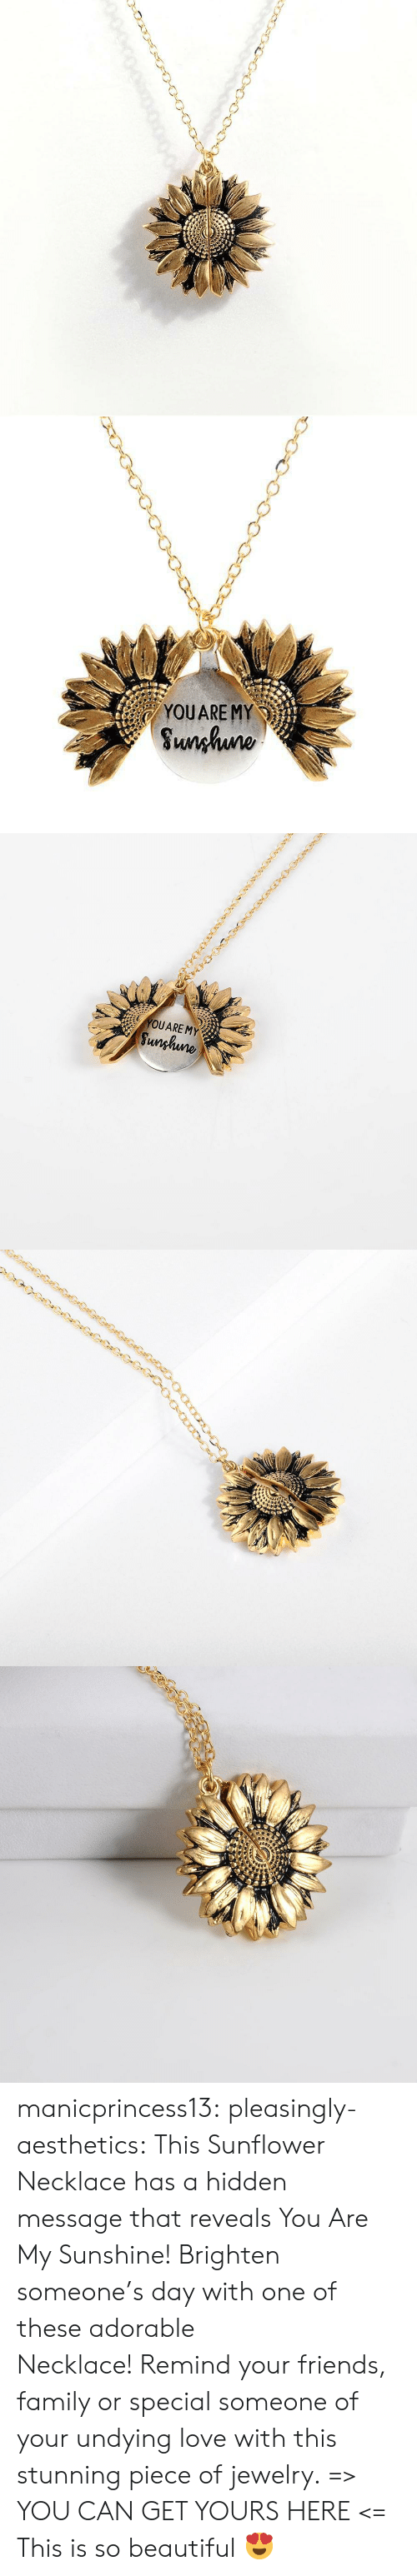 Beautiful, Family, and Friends: YOUARE MY  Sunhuno   YOUARE MY  Sunghune manicprincess13:  pleasingly-aesthetics: This Sunflower Necklace has a hidden message that reveals You Are My Sunshine! Brighten someone's day with one of these adorable Necklace! Remind your friends, family or special someone of your undying love with this stunning piece of jewelry. => YOU CAN GET YOURS HERE <=   This is so beautiful 😍